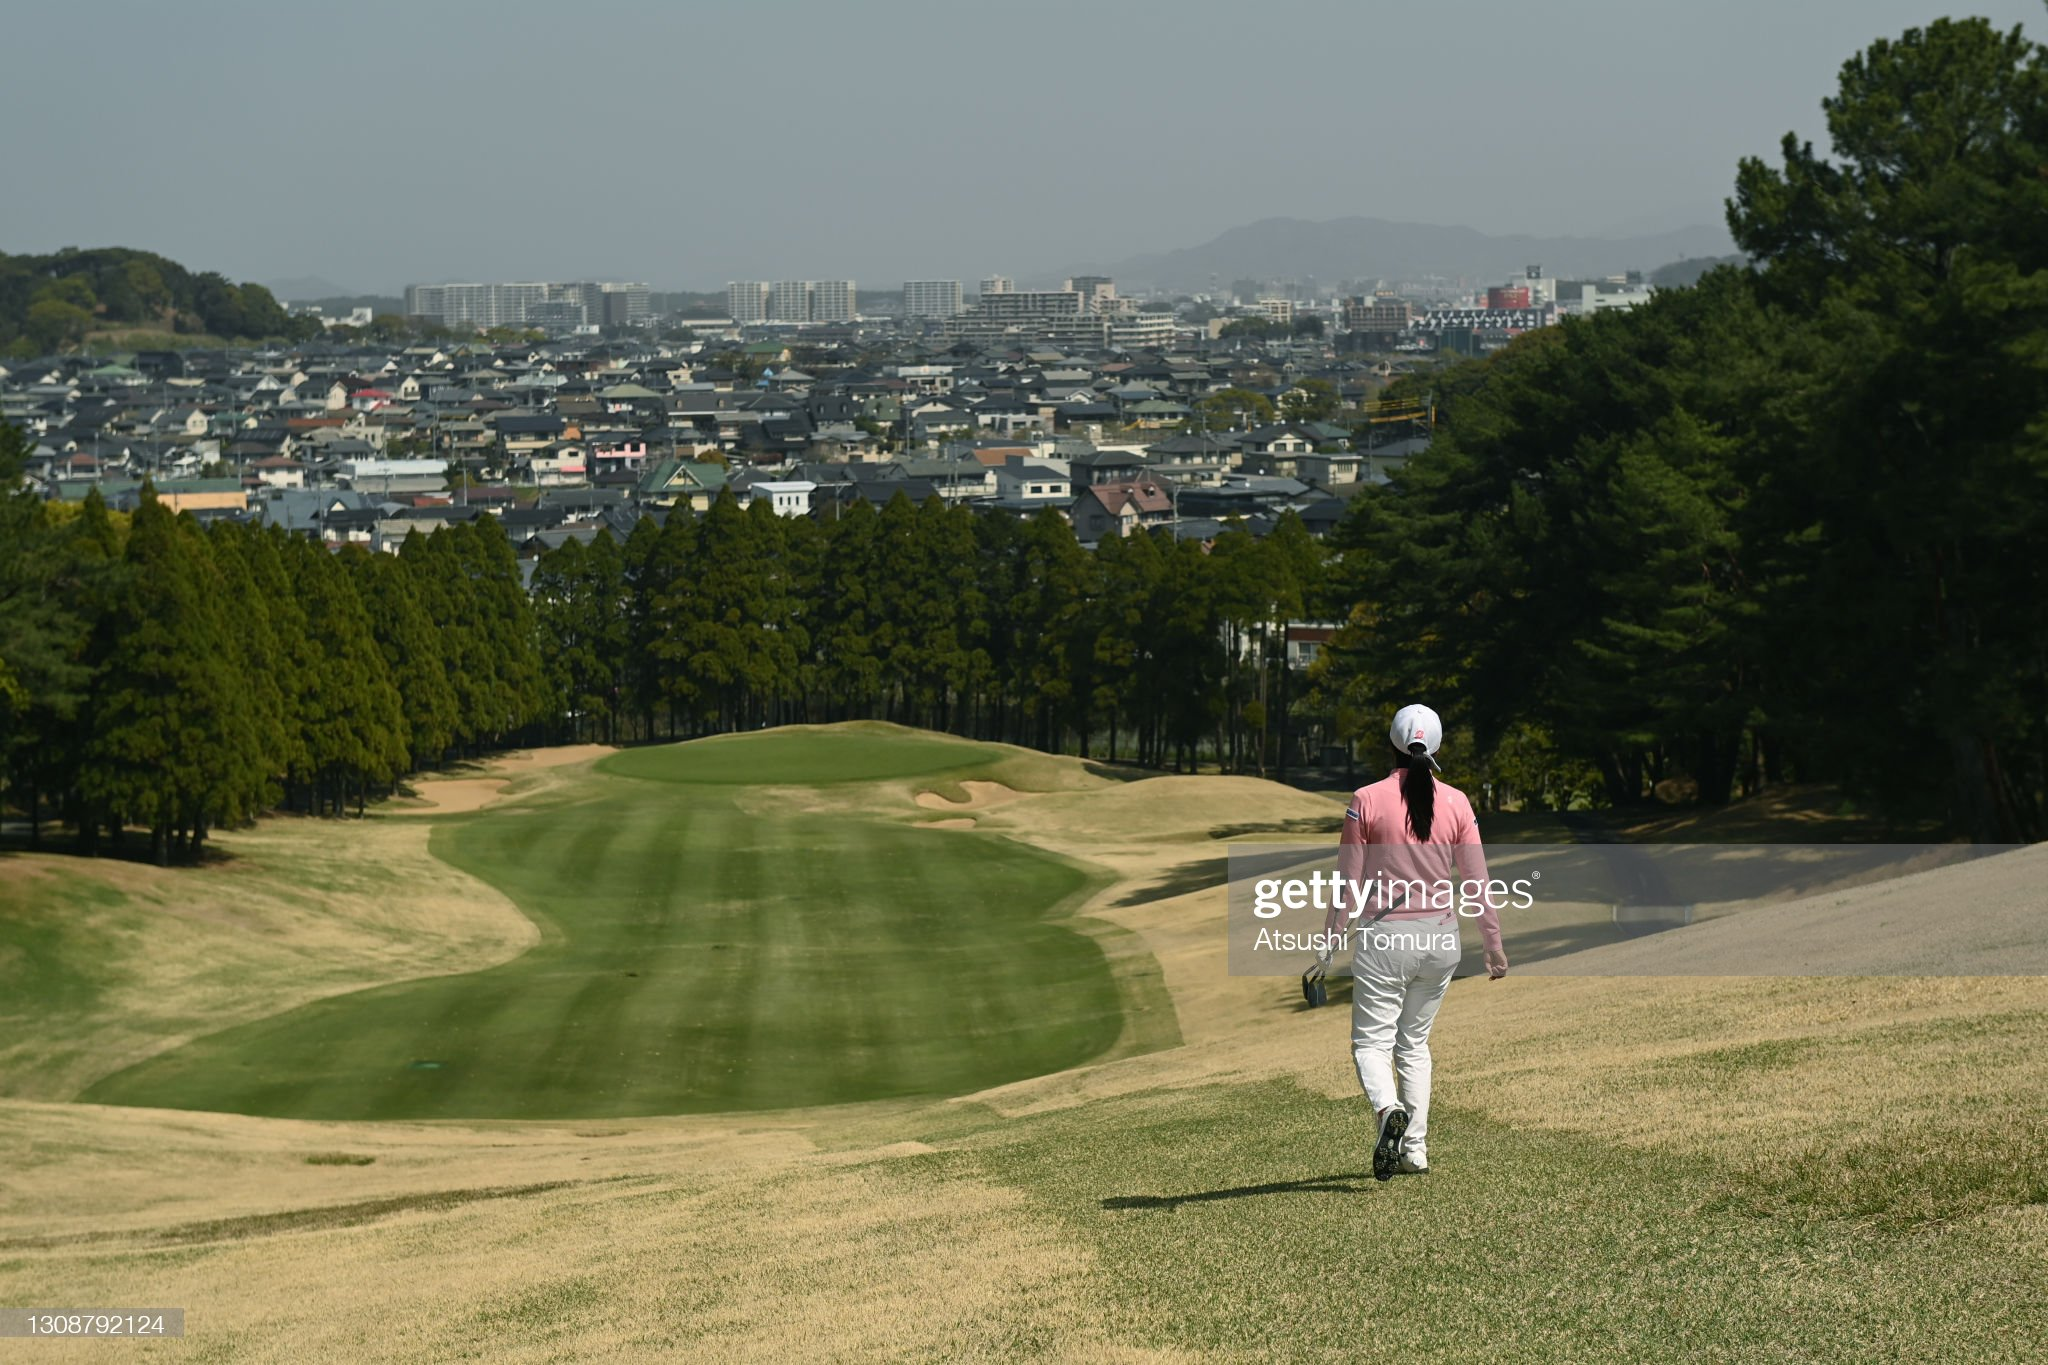 https://media.gettyimages.com/photos/kotone-hori-of-japan-walks-on-the-3rd-fairway-during-the-final-round-picture-id1308792124?s=2048x2048